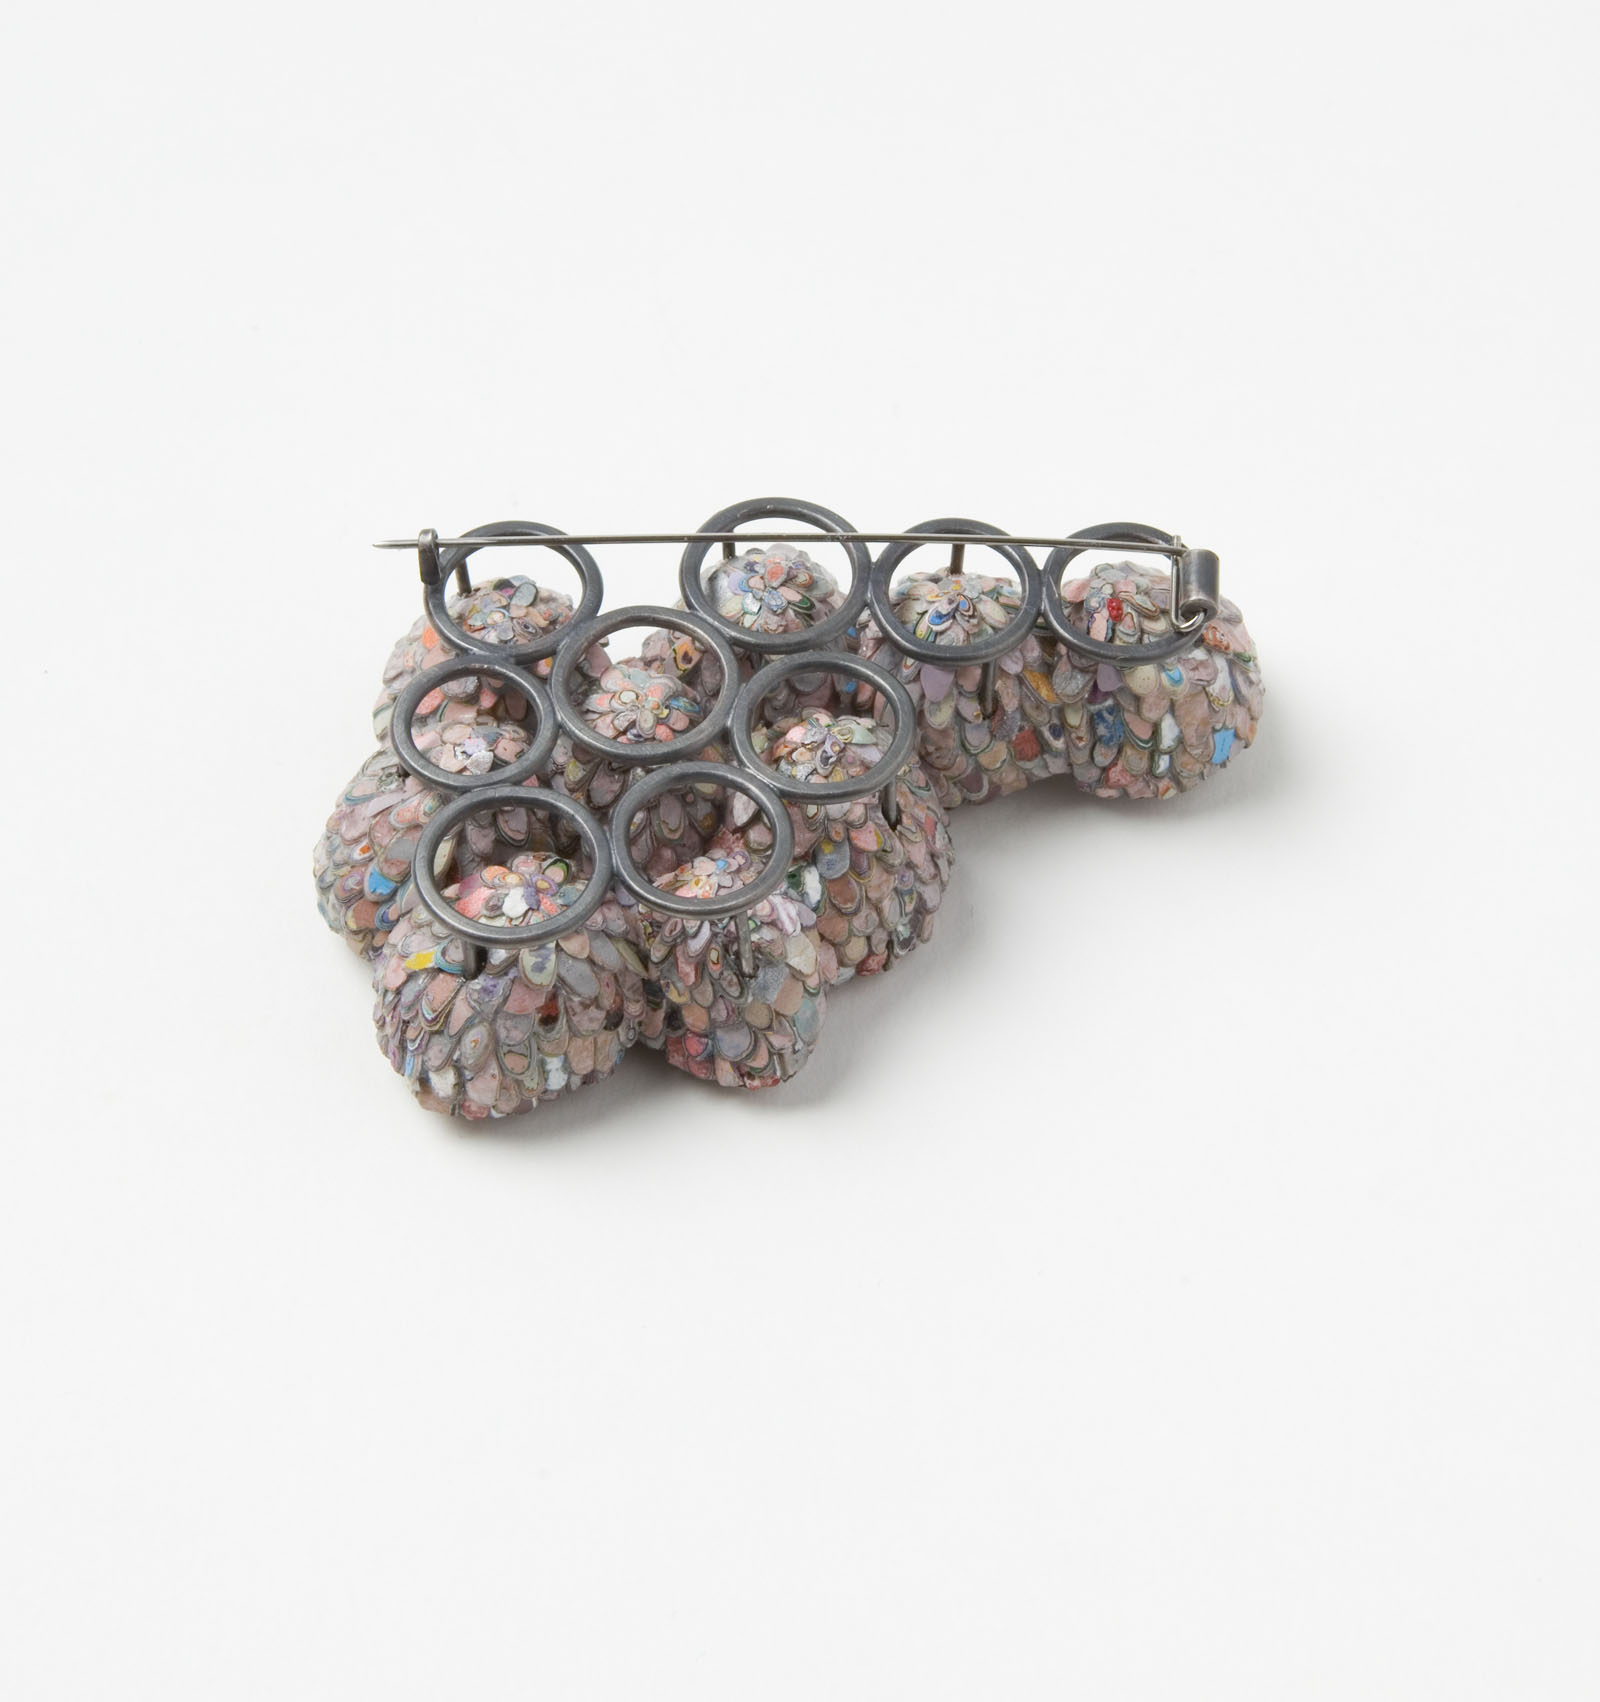 """The Secret Keepers (Pink)"" I Brooch, 2016 I Seed pods, graffiti, glass, silver, stainless steel I Photo: Mirei Takeuchi"